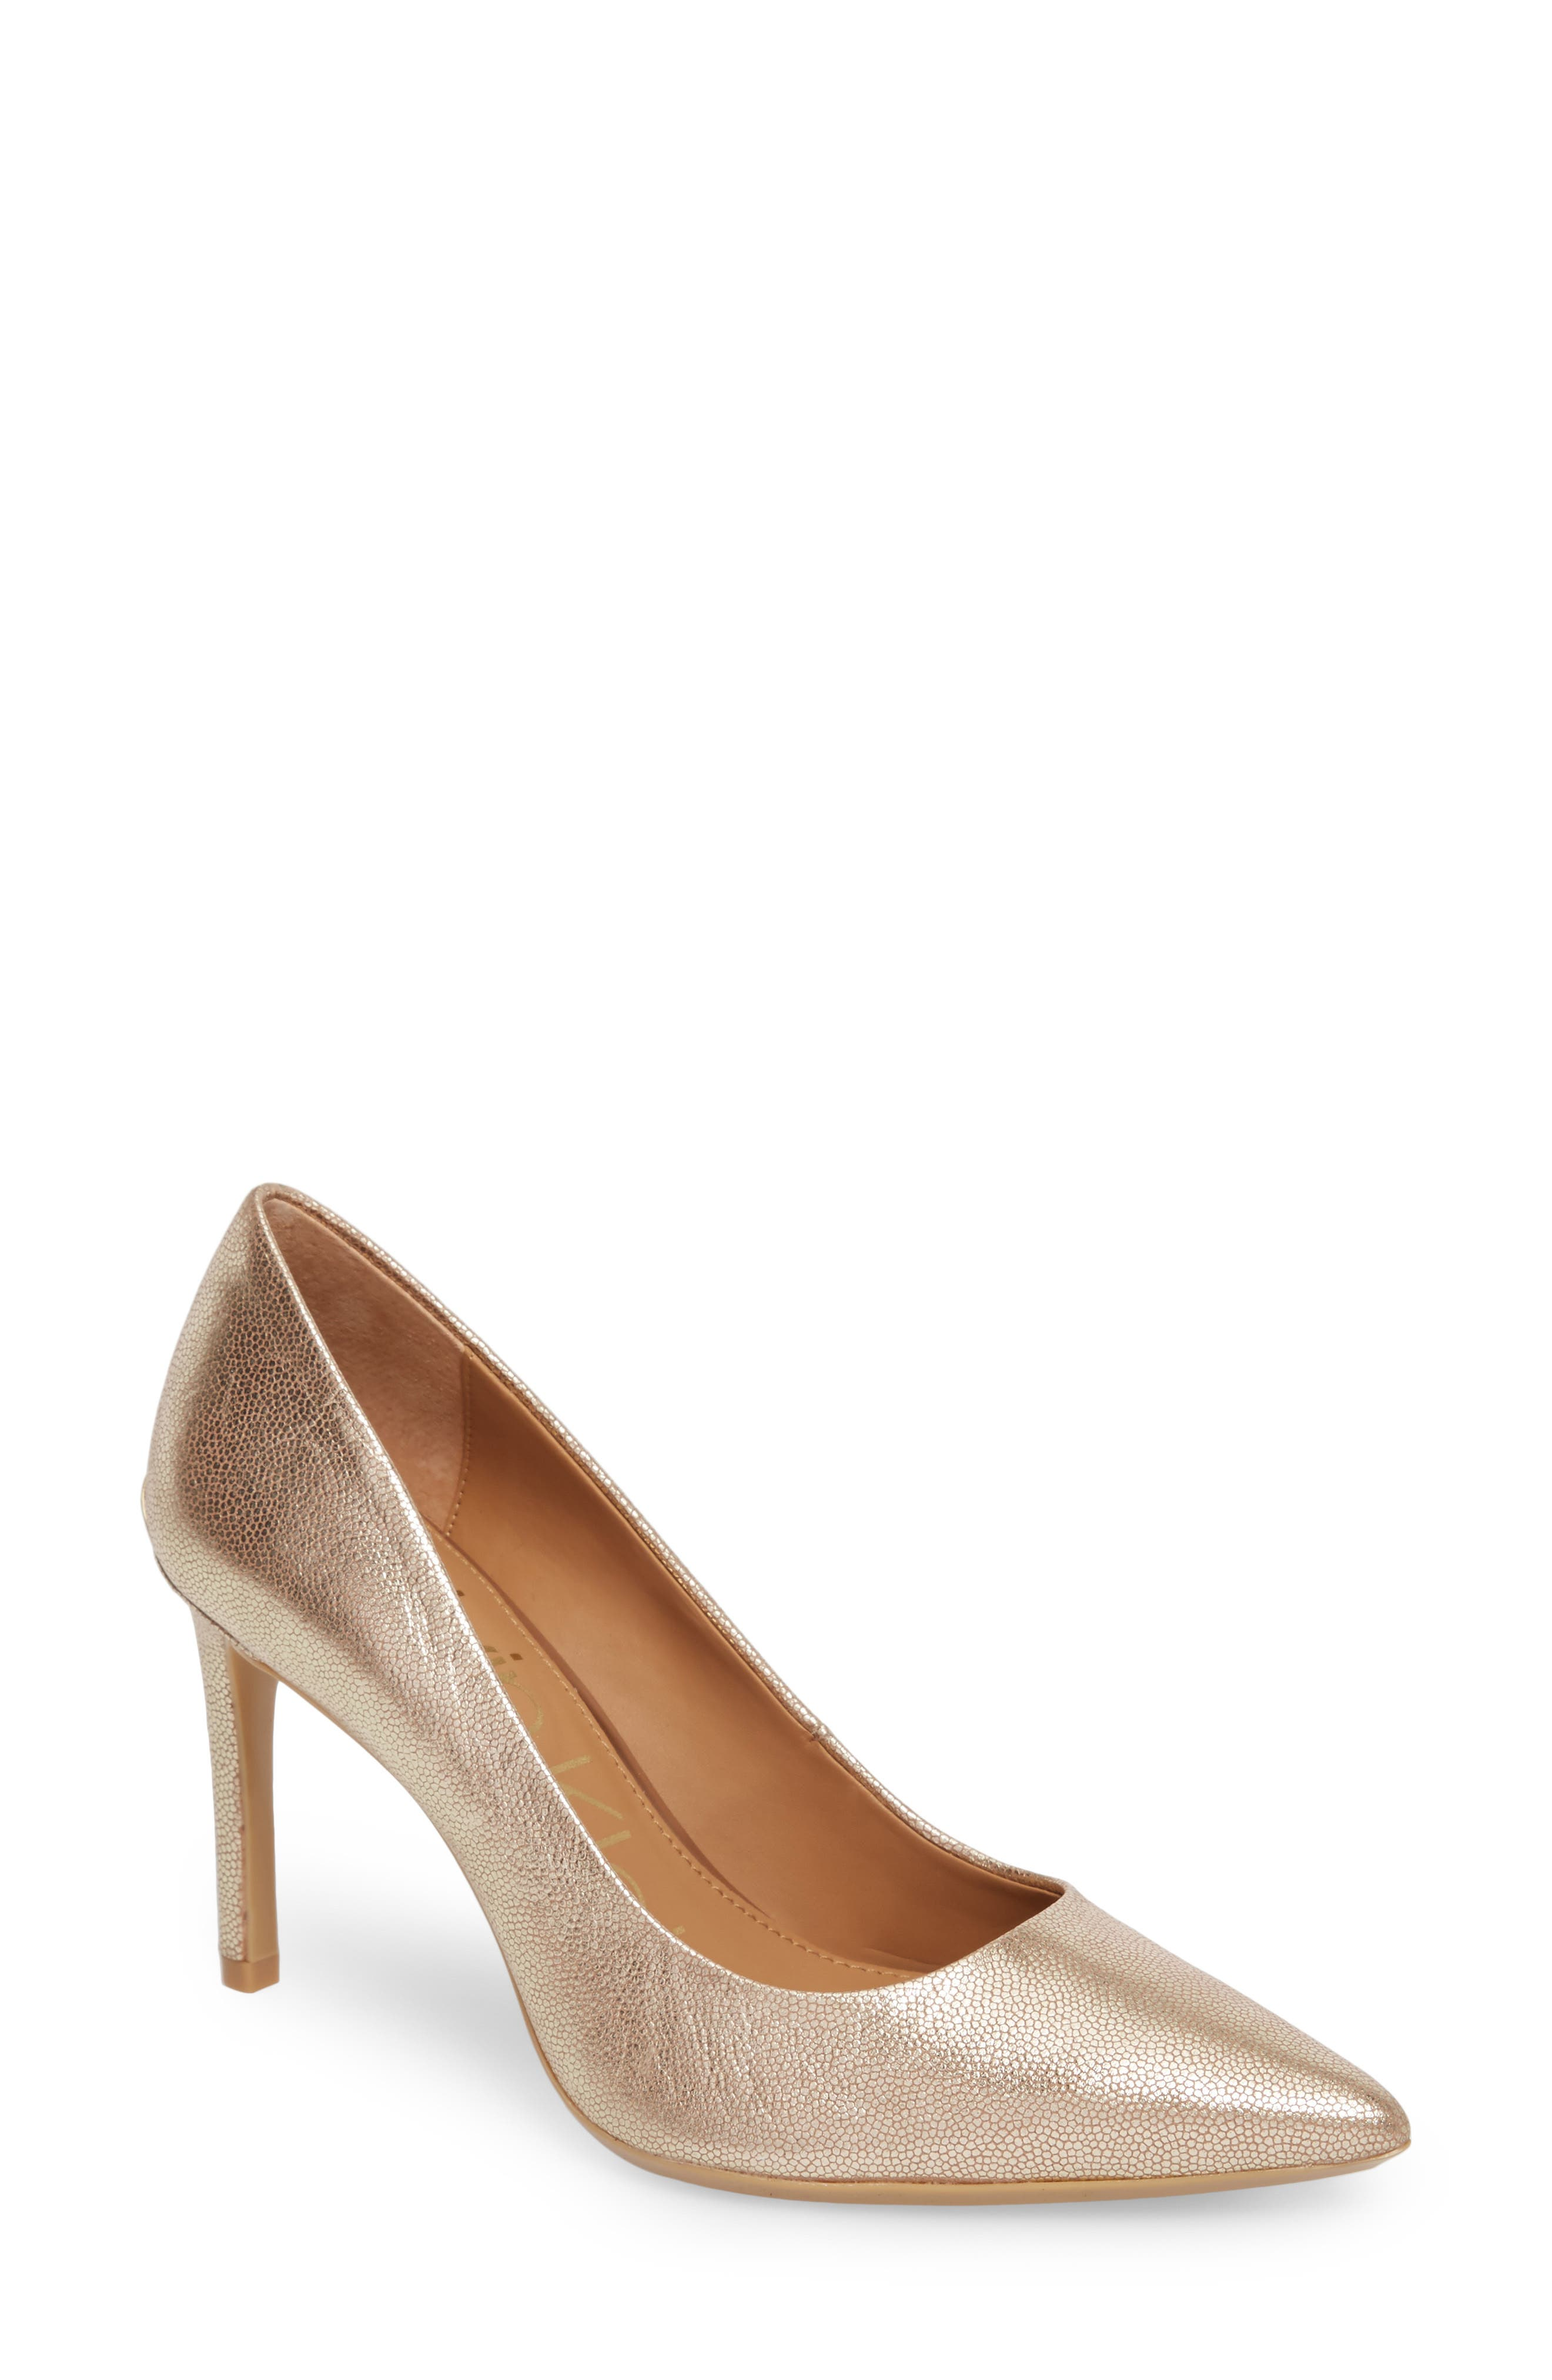 Ronna Pointy Toe Pump,                         Main,                         color, PLATINUM LEATHER